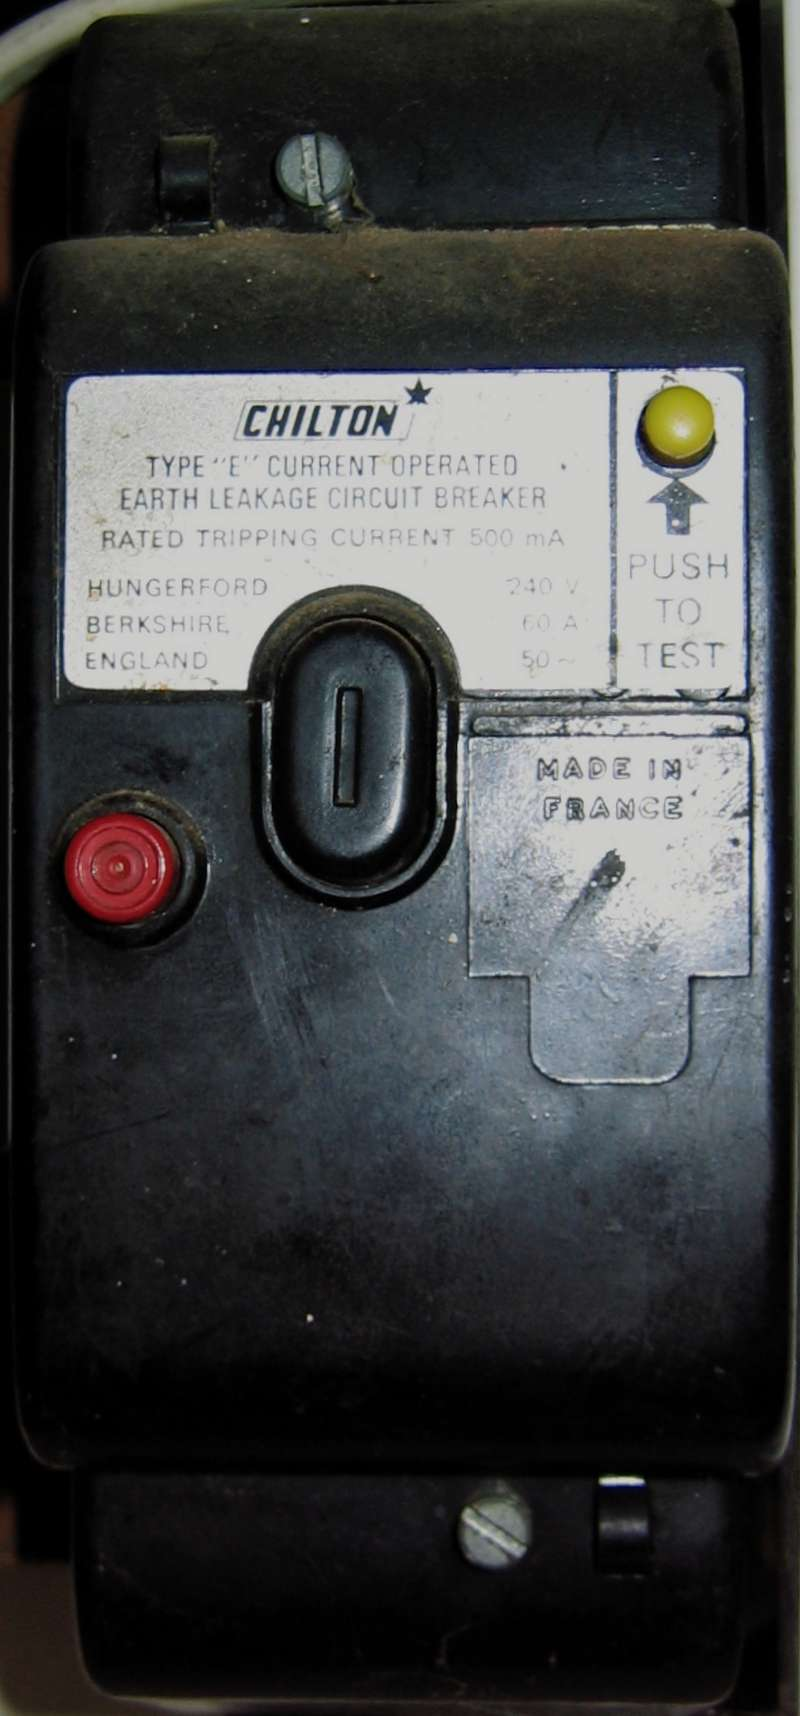 Eec247 Guide To Dealing With An Electrical Emergency Double Poles 2p Elcb Earth Leakage Circuit Breaker Diy Electricals Closeup Of